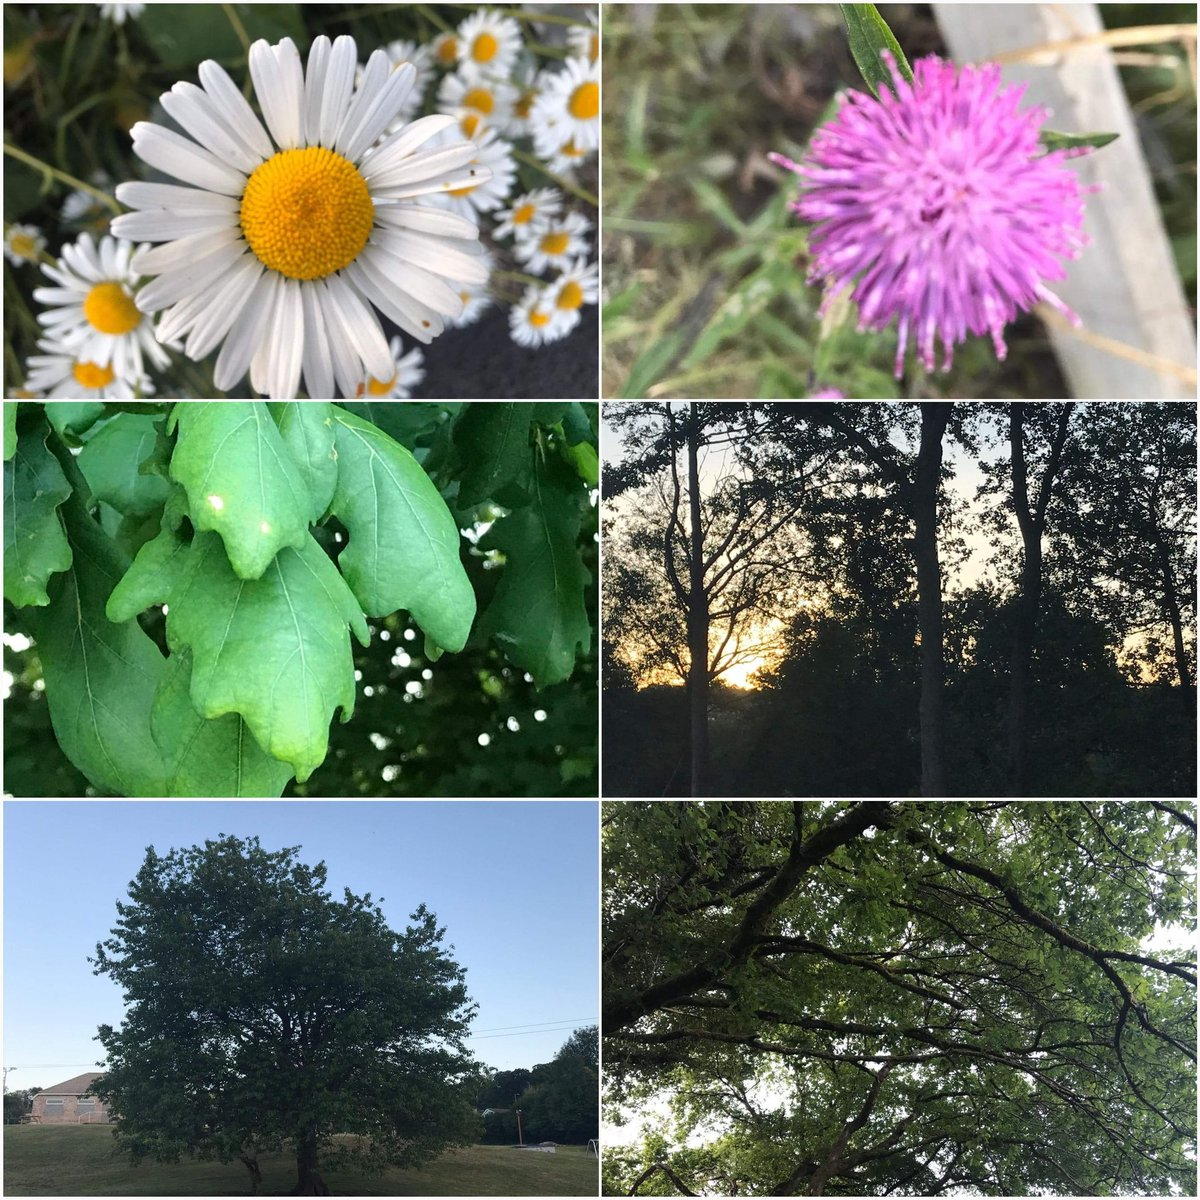 Feeling so blessed right now. Every time I walk the dog I notice something new 😊🐶❤🌳🌼#nature #NaturePhotography #trees #MondayMotivation #sunset #moon #walking #Wellbeing #COVIDー19 #lockdownuk #Health #Happiness #Peace #rest #recharge